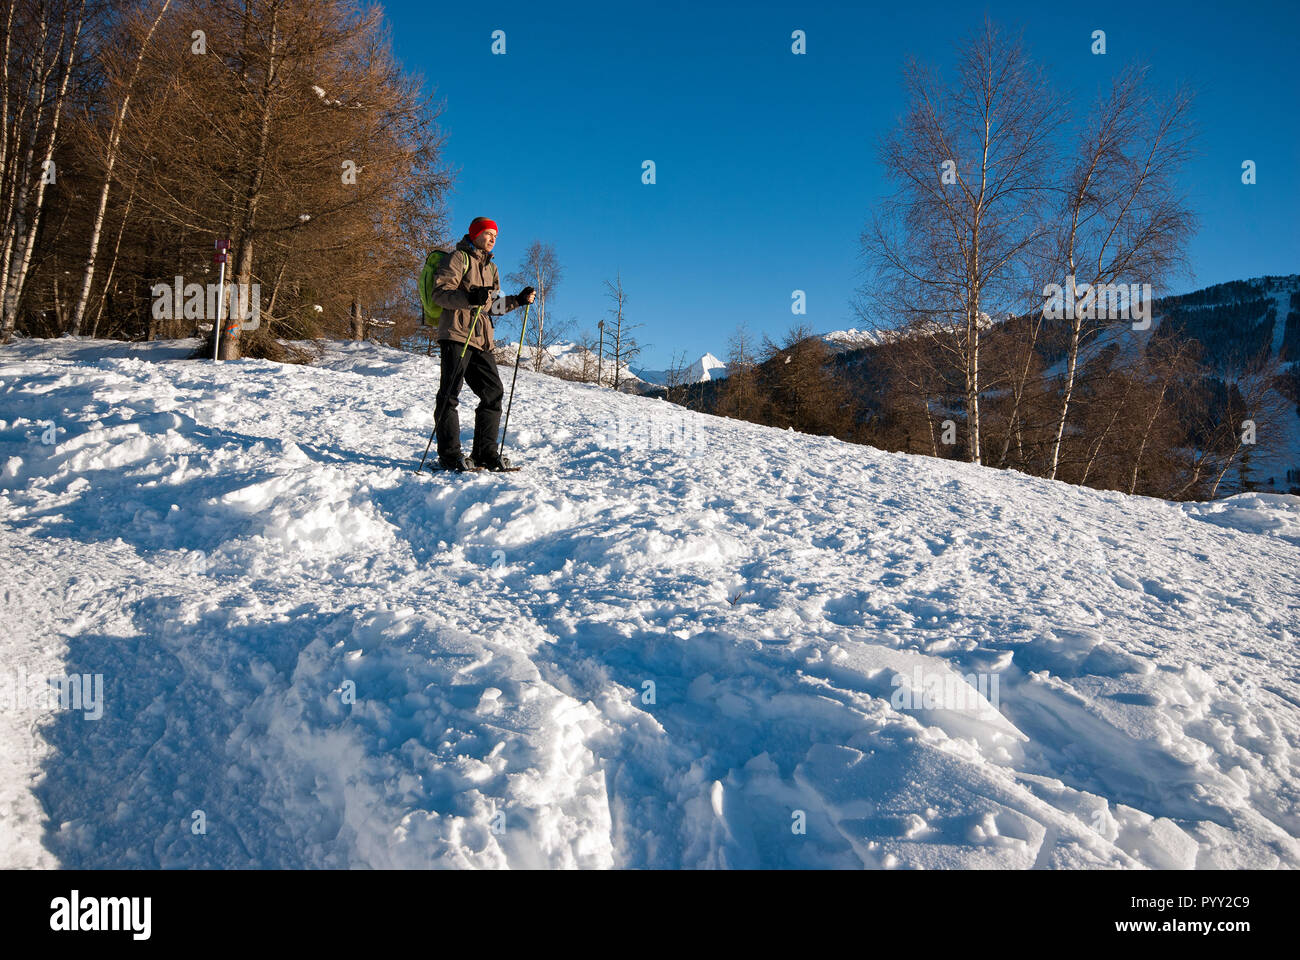 Winter trekking with snowshoes in Orobie Alps, Lombardy, Italy - Stock Image